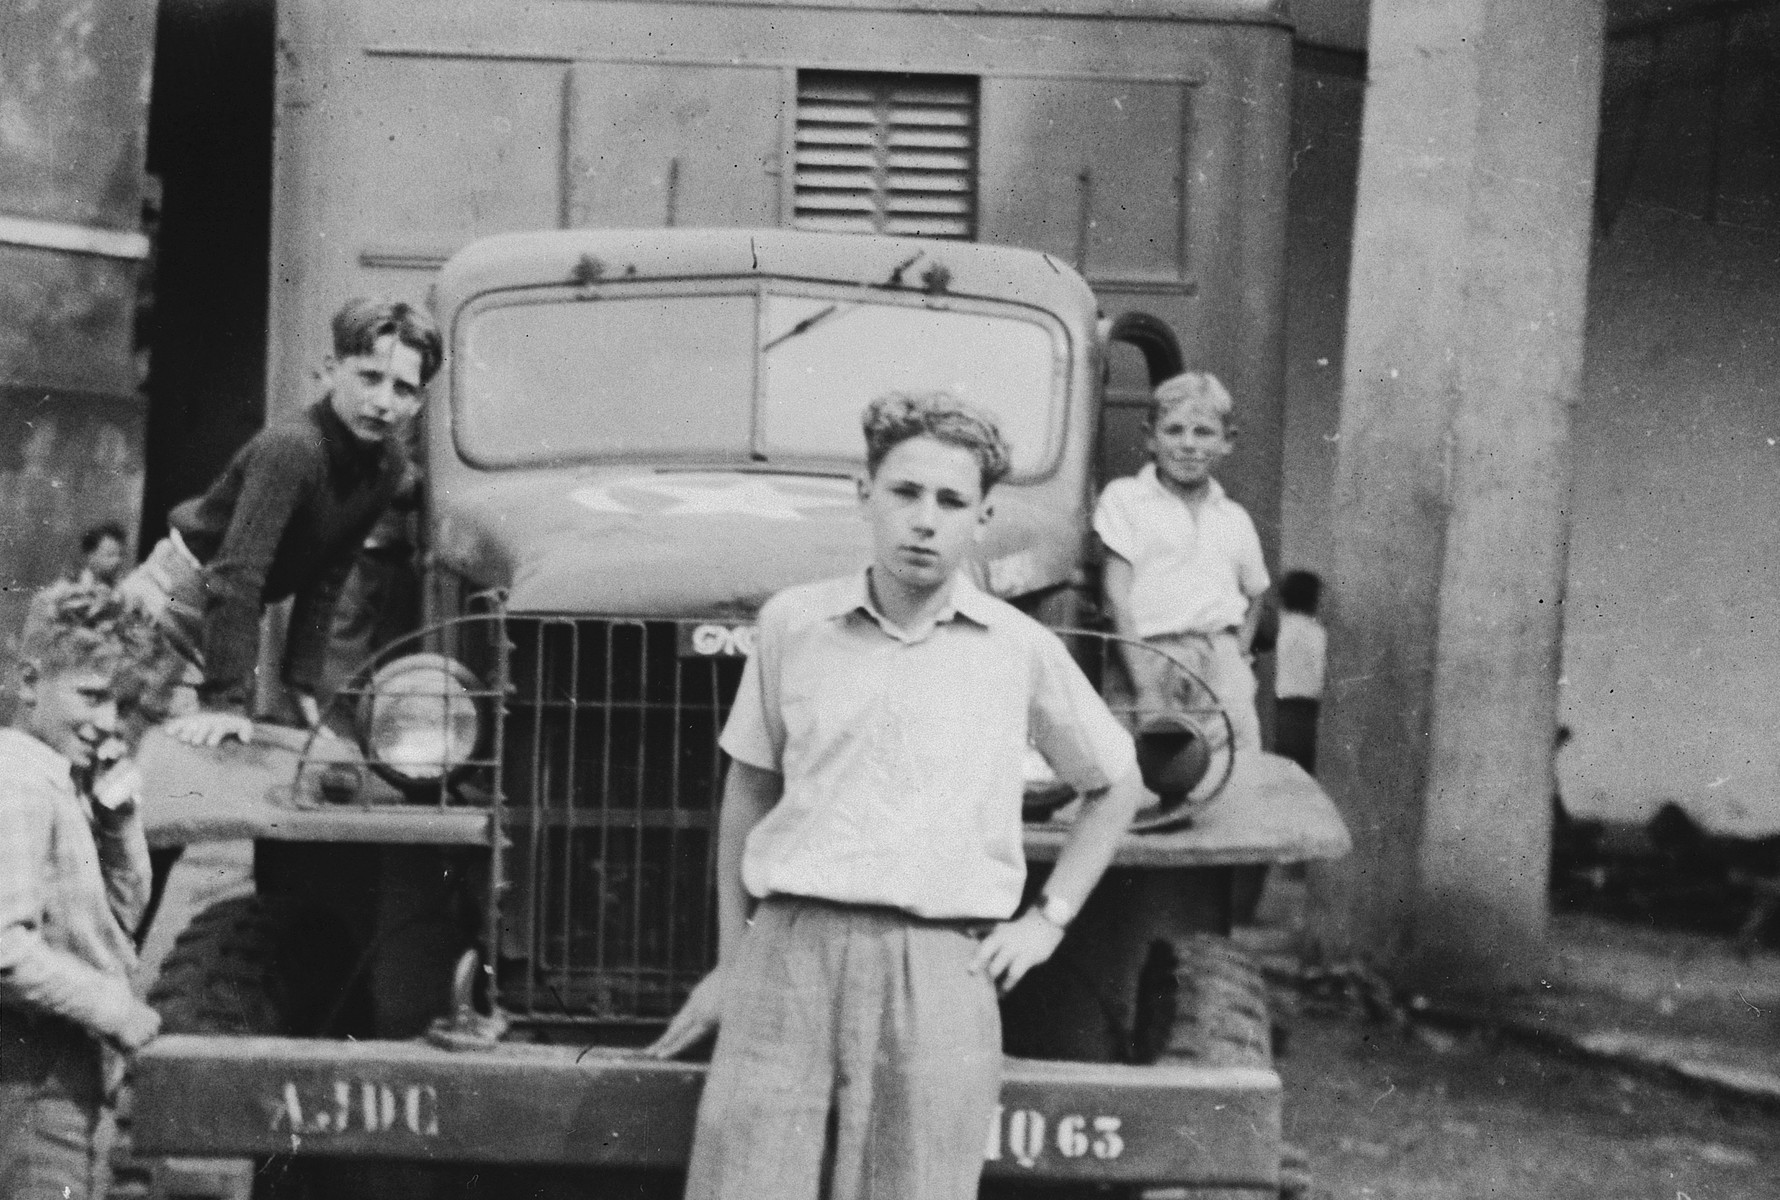 Children crowd around an AJDC truck outside the Selvino children's home in Italy.  Simon Frumkin is pictured in the foreground.